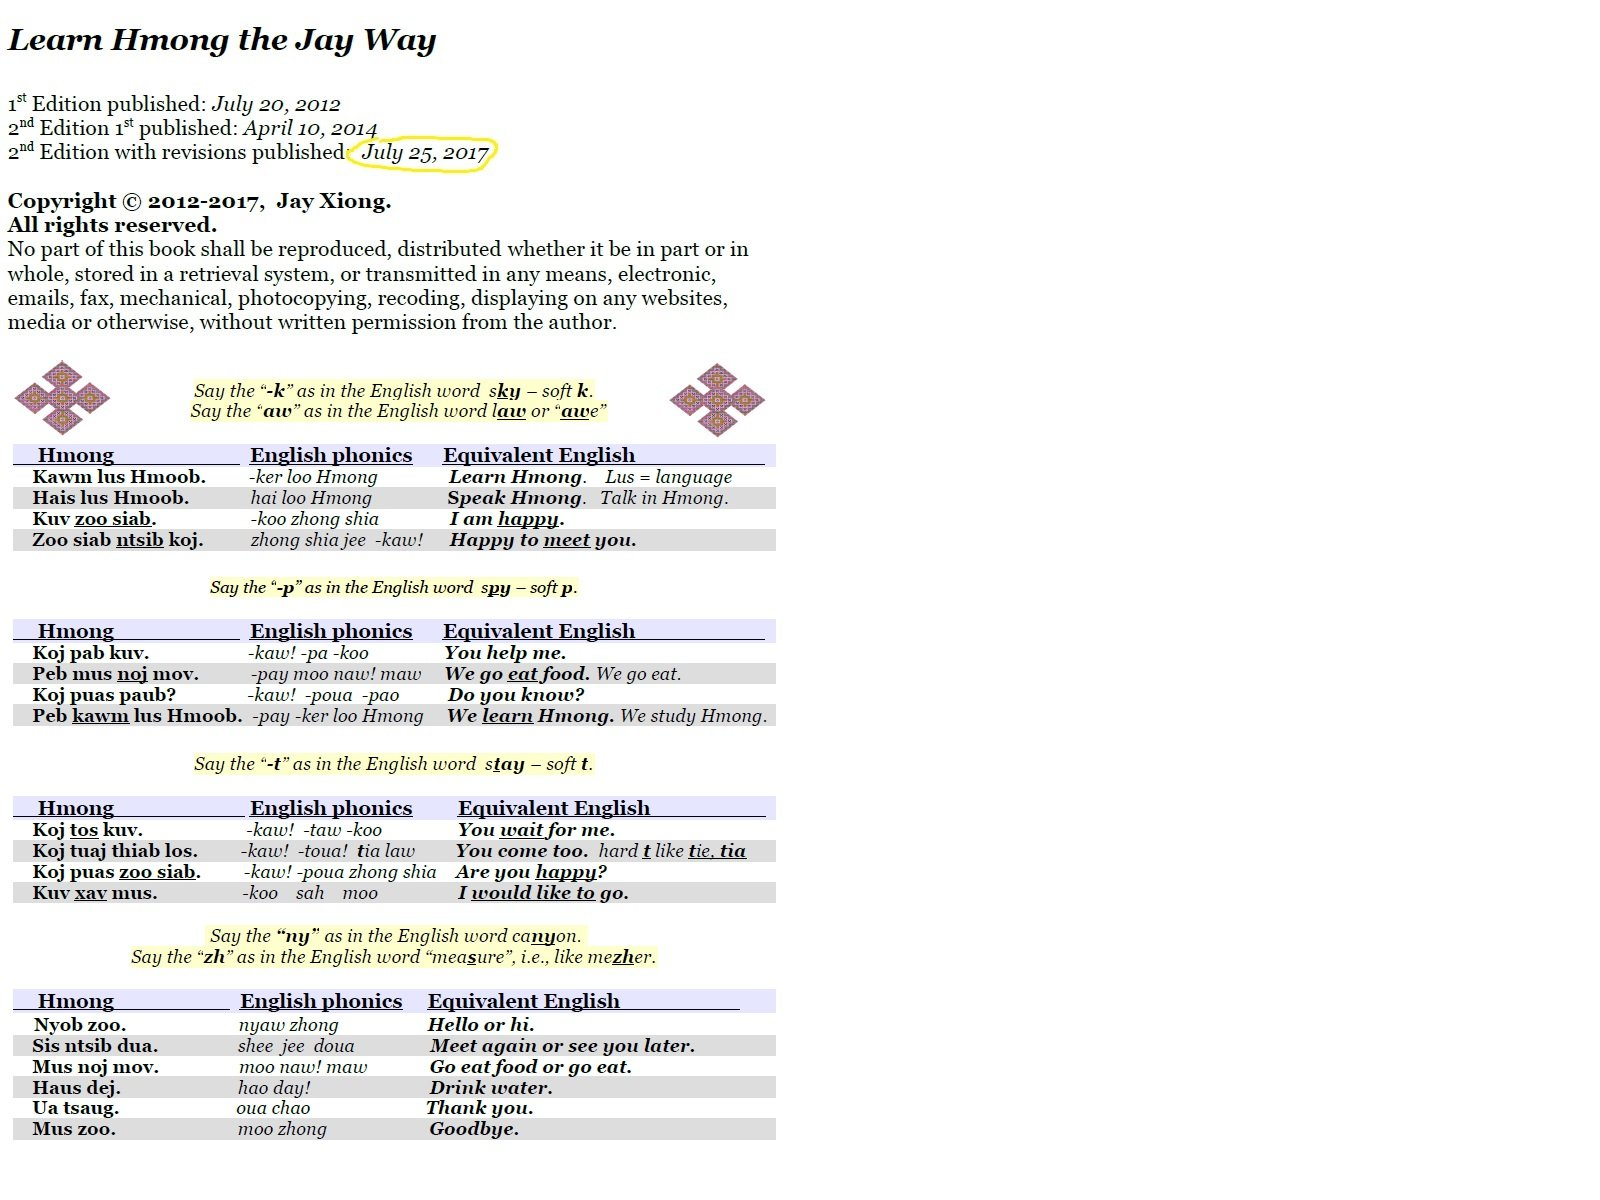 By Jay Xiong Learn Hmong the Jay Way Learn Hmong the Jay Way